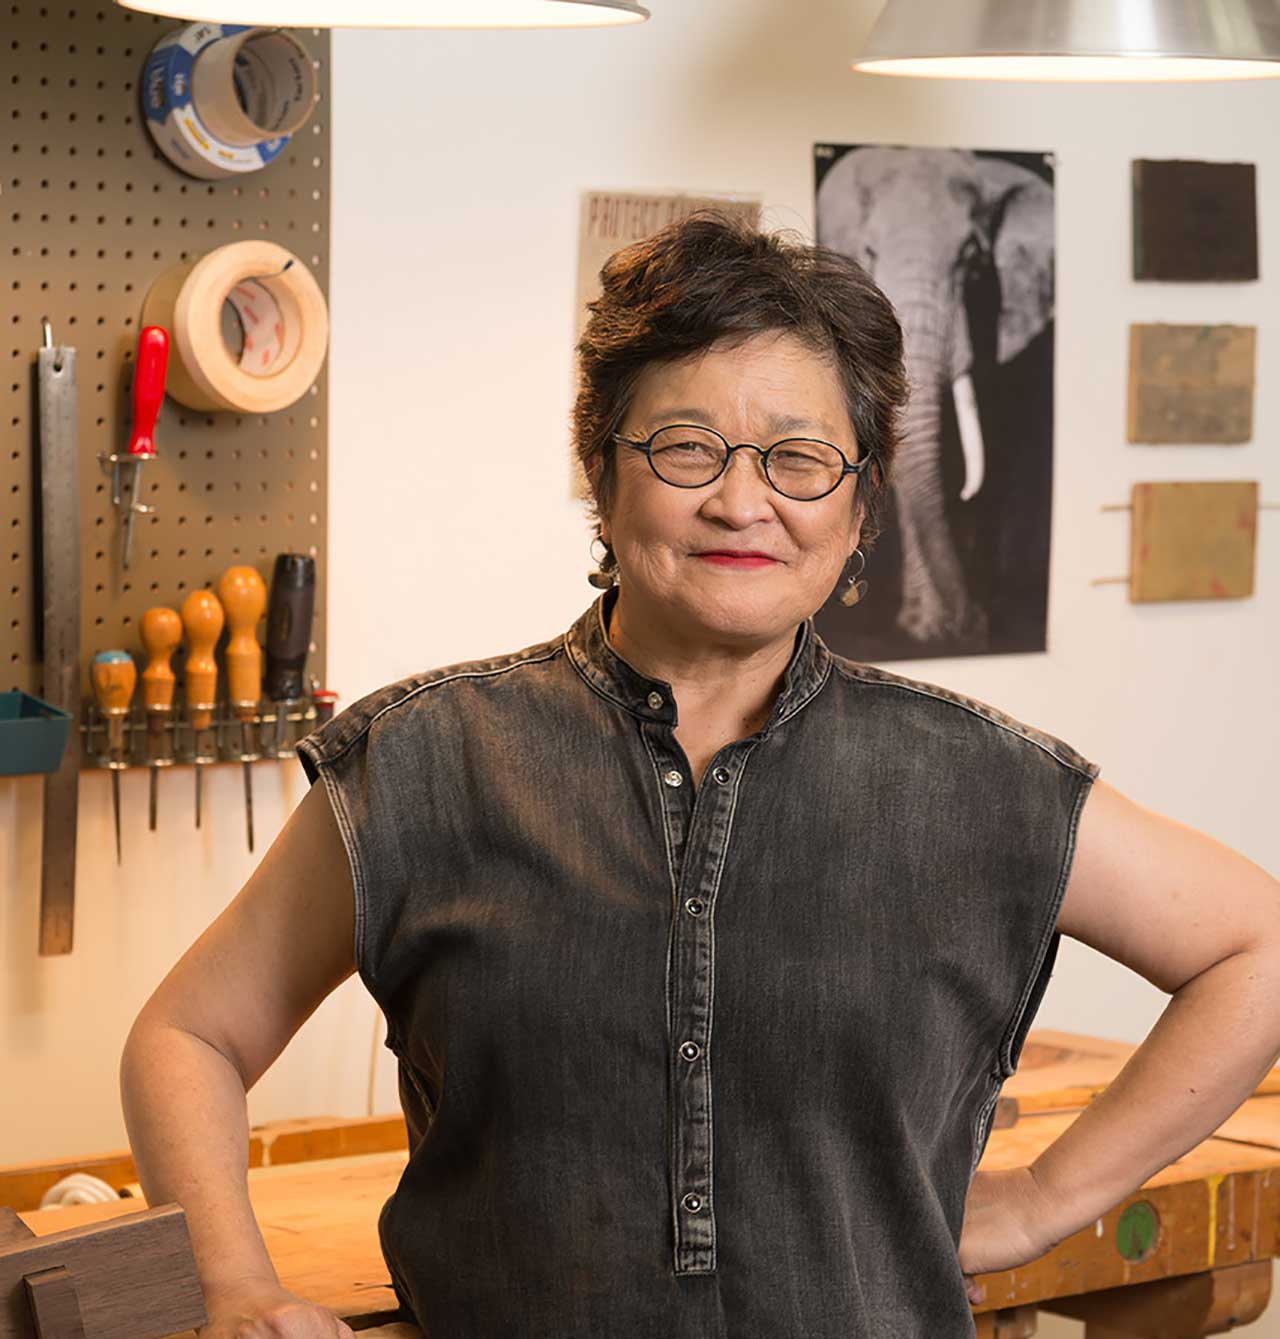 Clever Ep. 128 Furniture Designer & Educator Wendy Maruyama